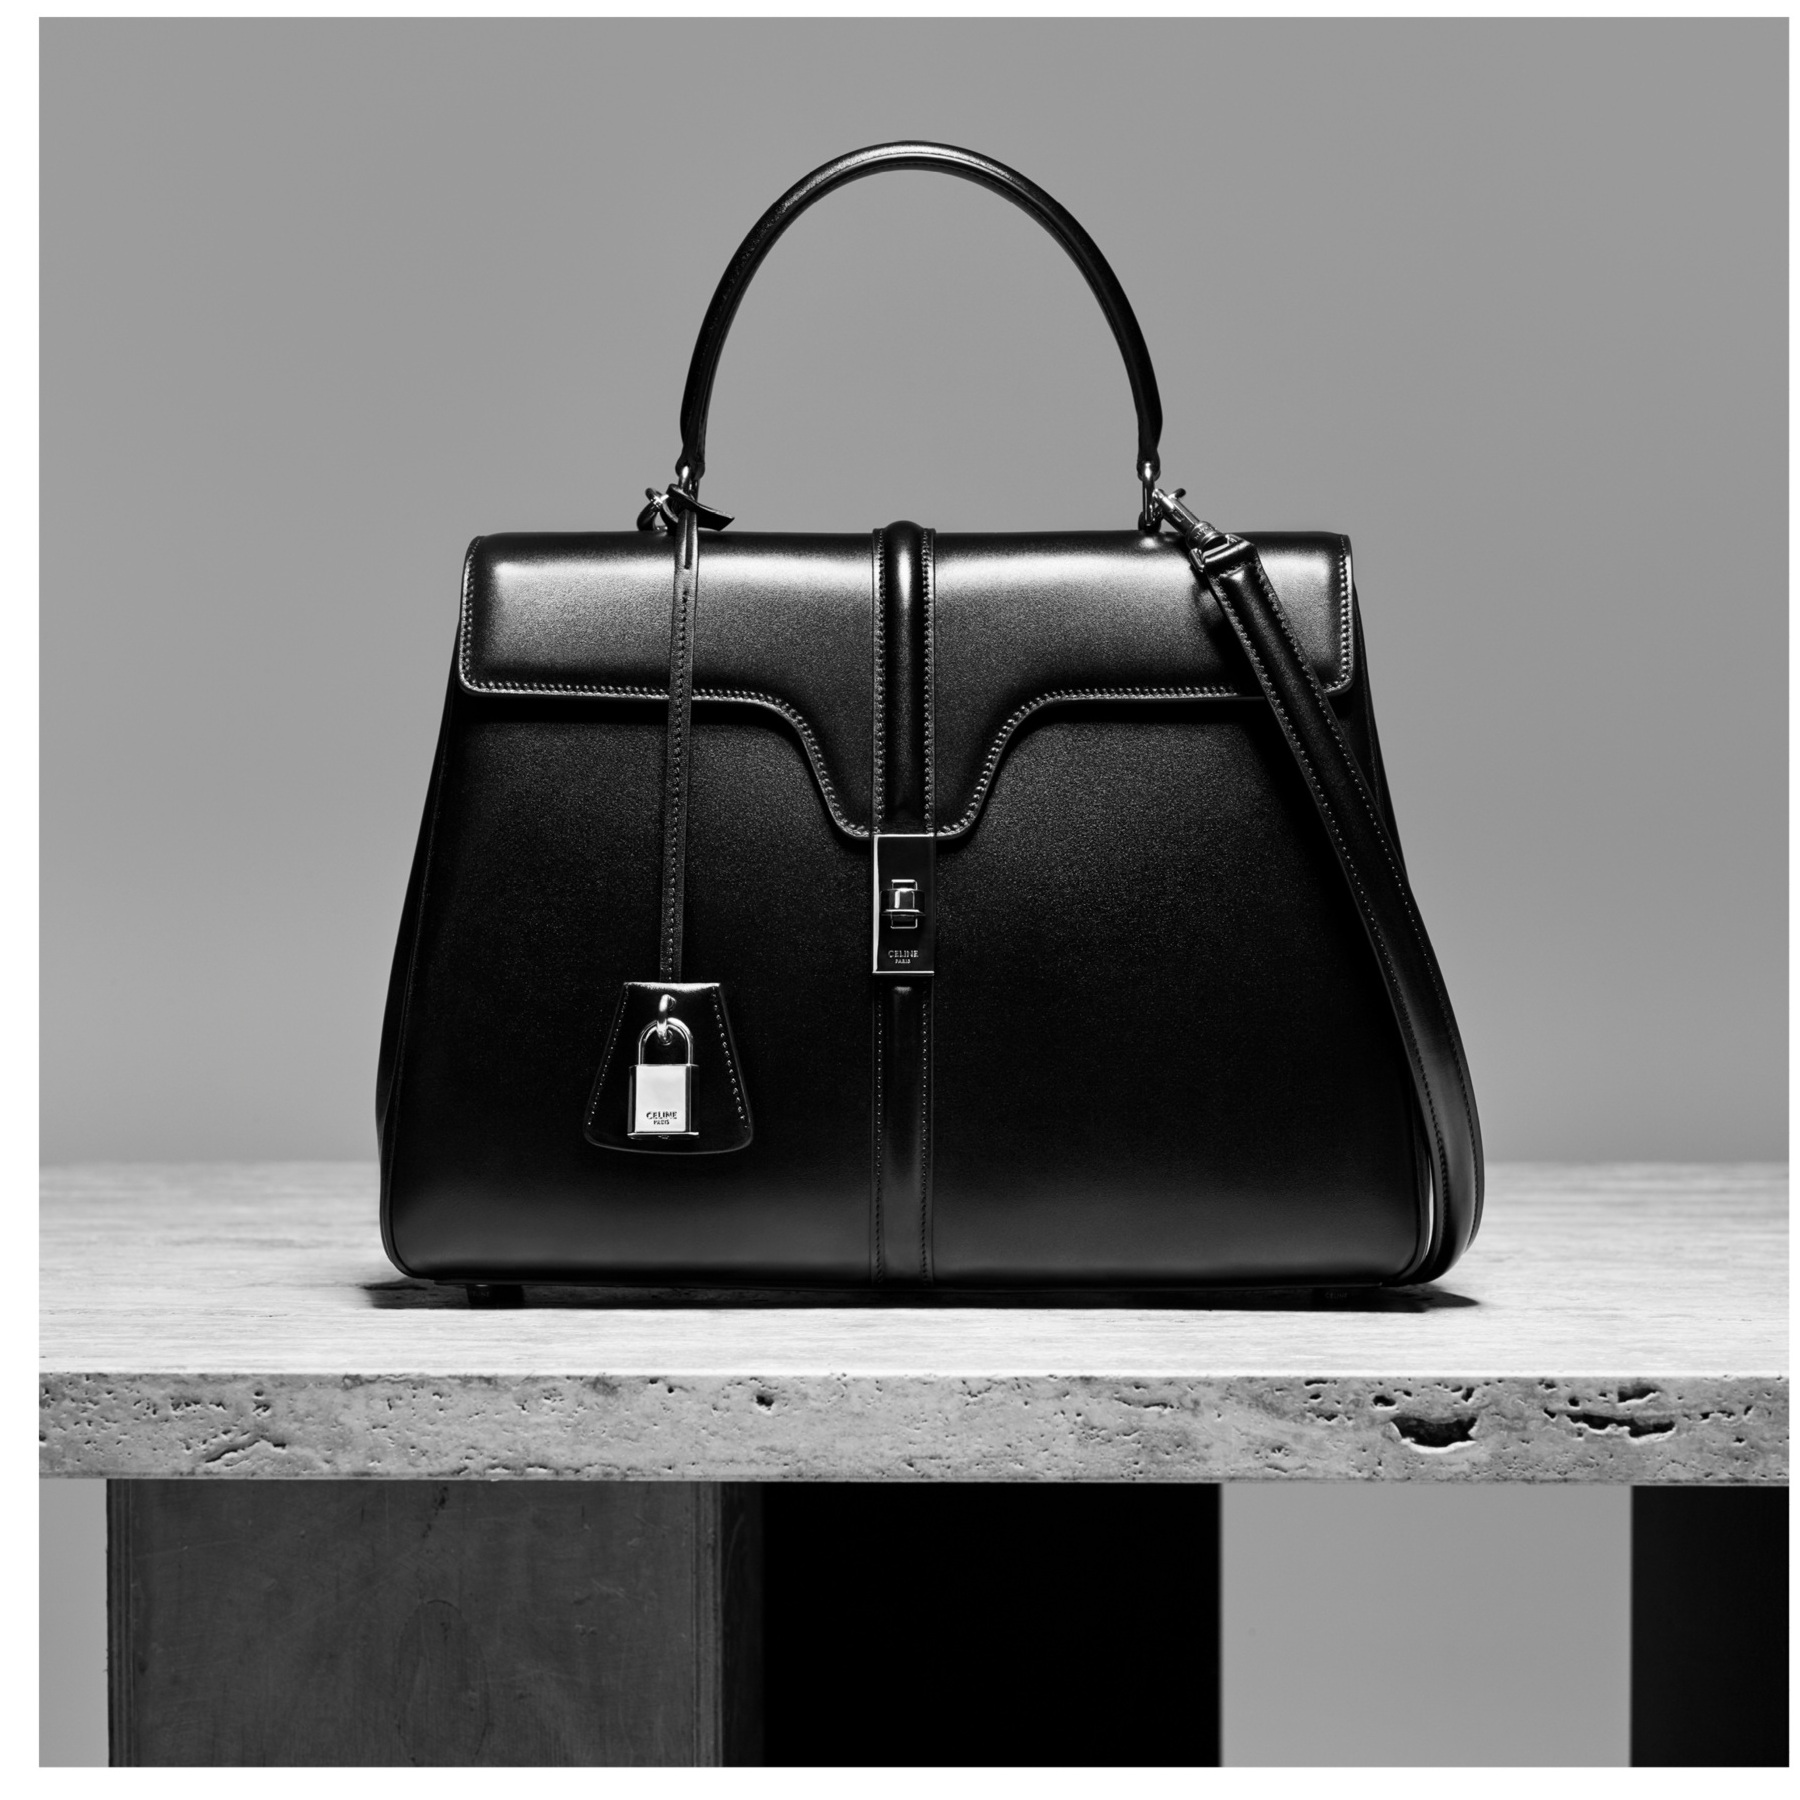 Forum on this topic: TheList: 2019s Most Buzzed About Bags, thelist-2019s-most-buzzed-about-bags/